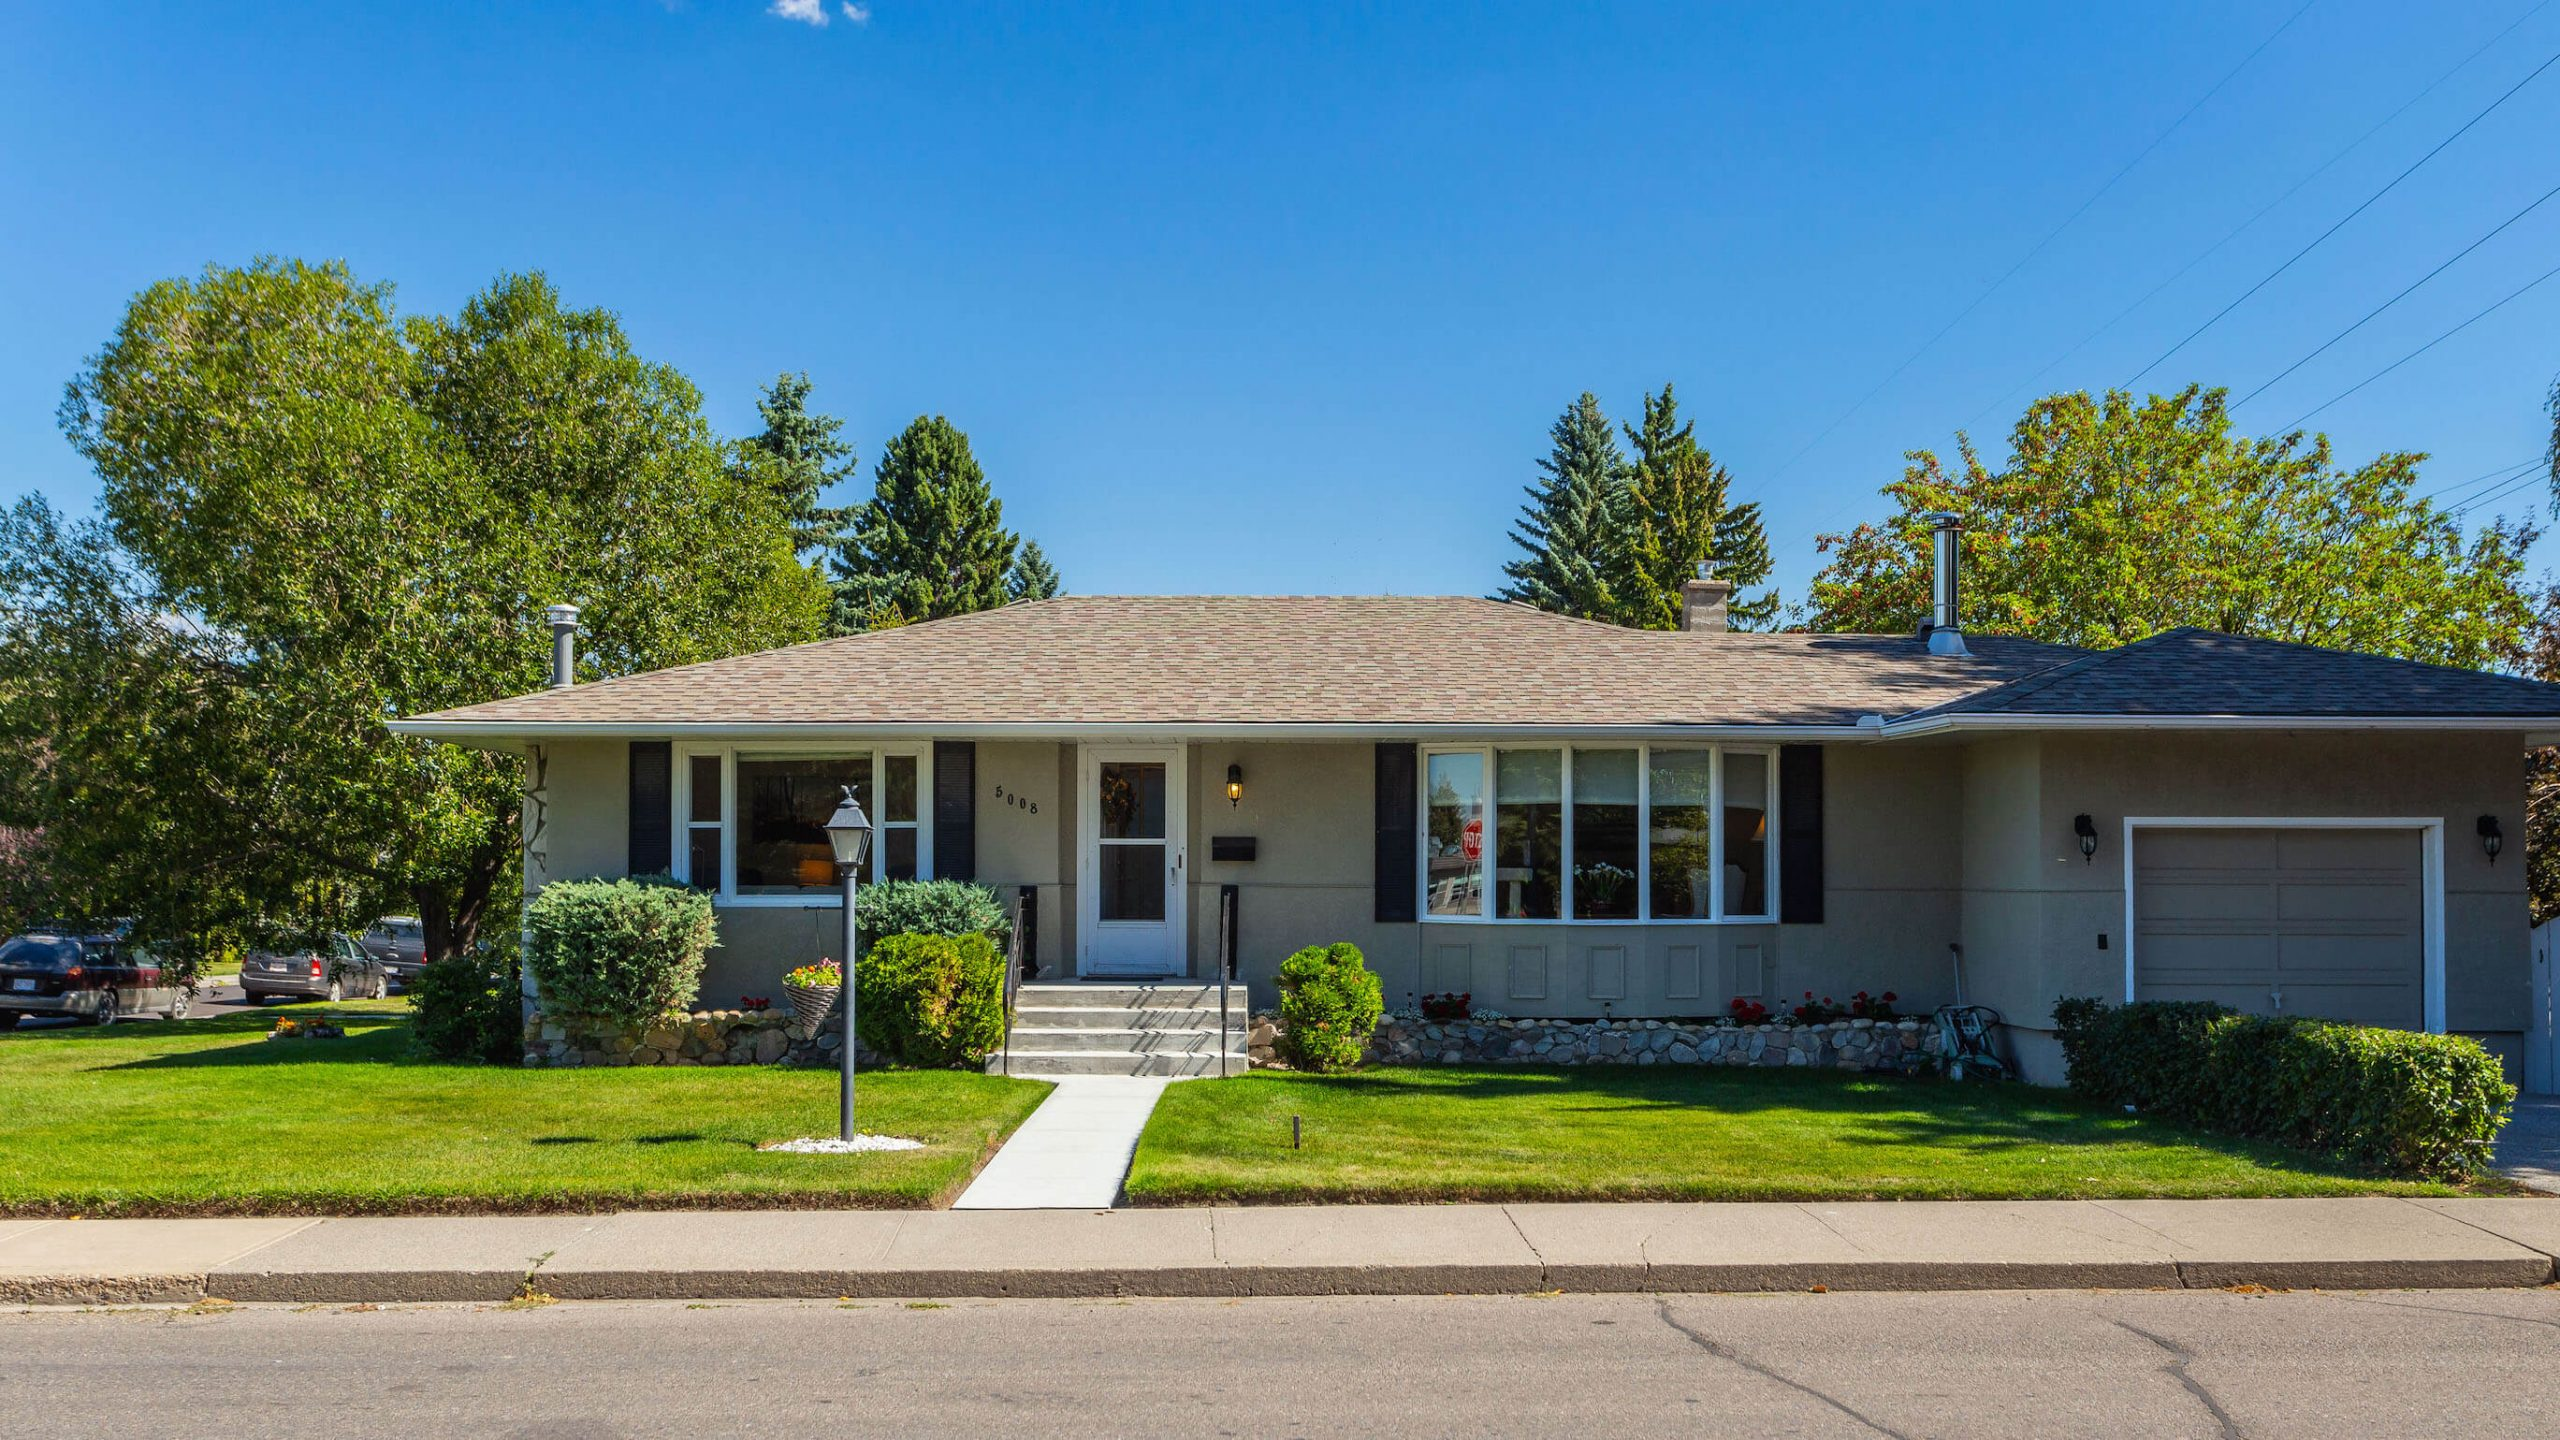 Bungalow on picturesque street in Elboya, Calgary. For sale by Plintz Real Estate.